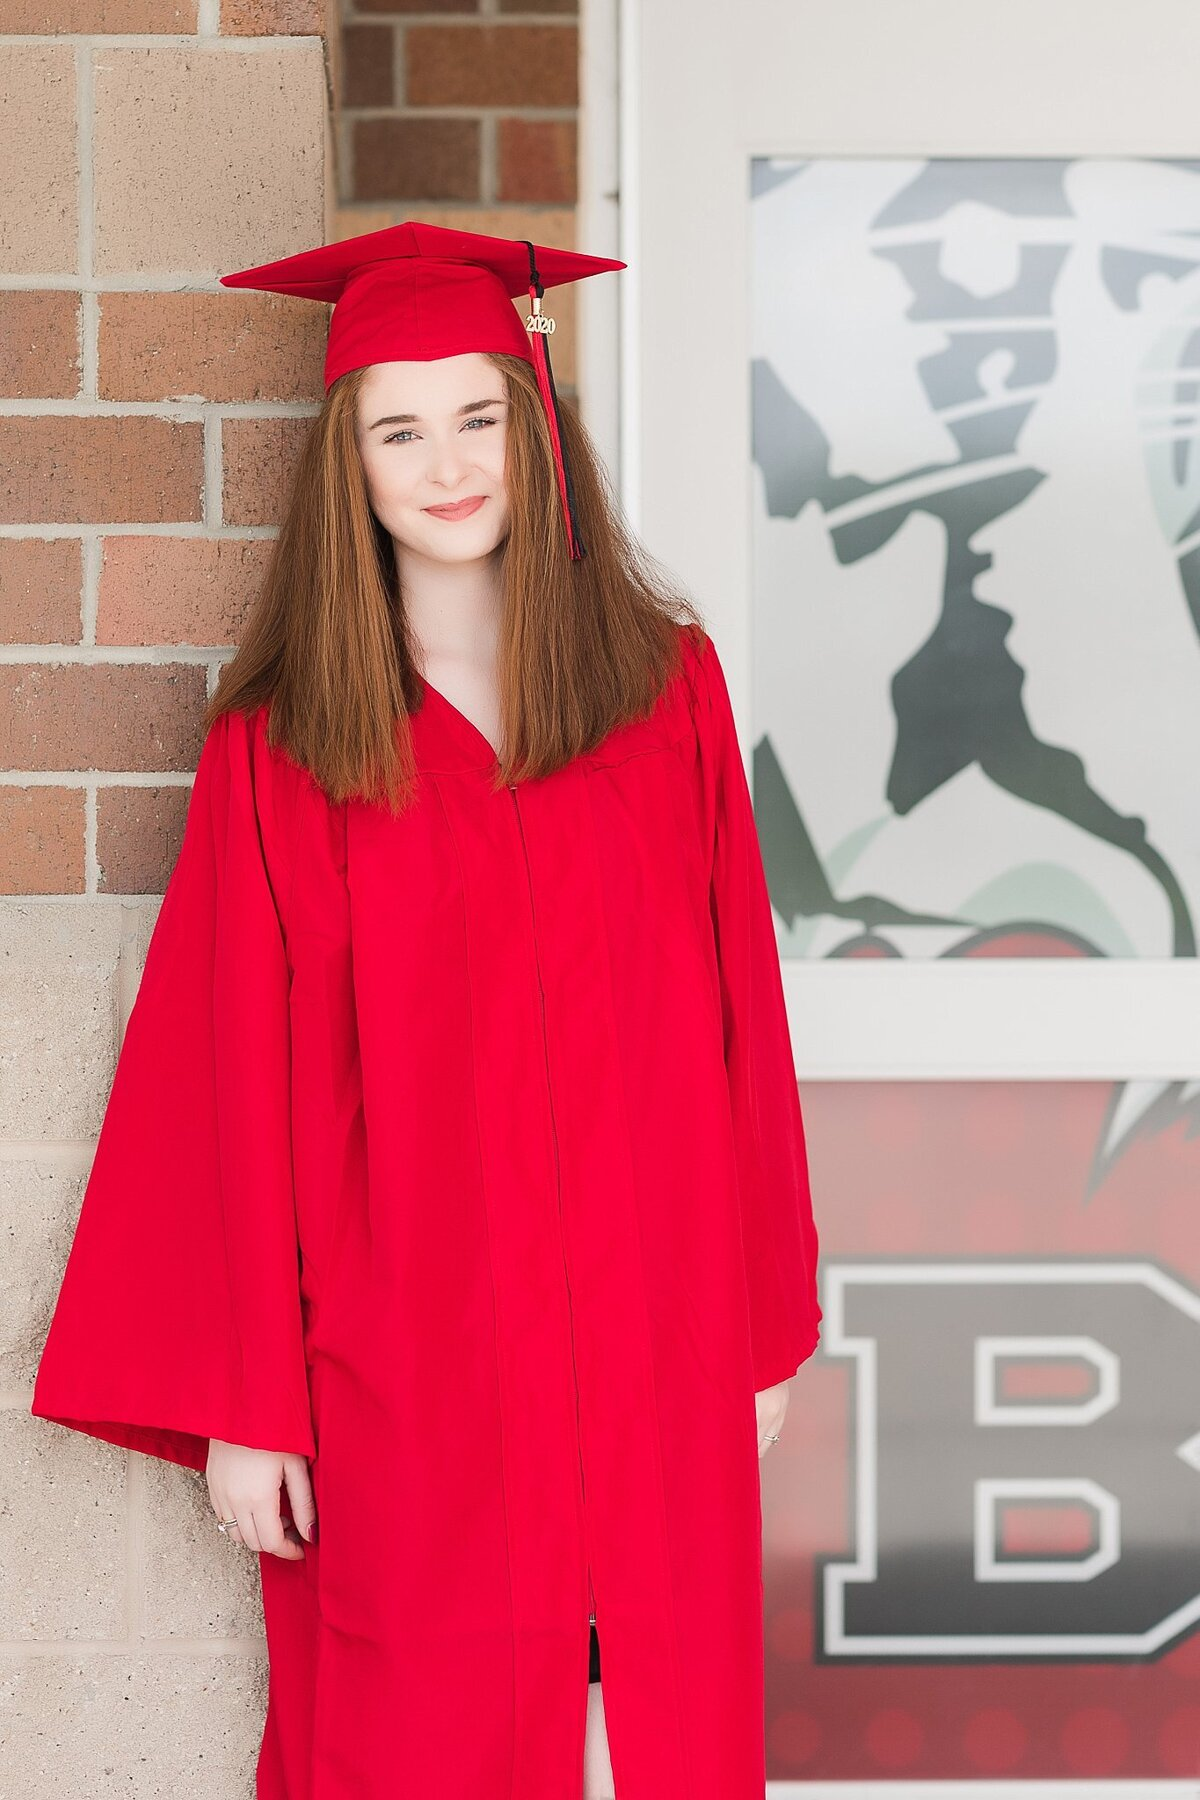 2020 Senior Cap and Gown Session photos by Simply Seeking Photography_0277